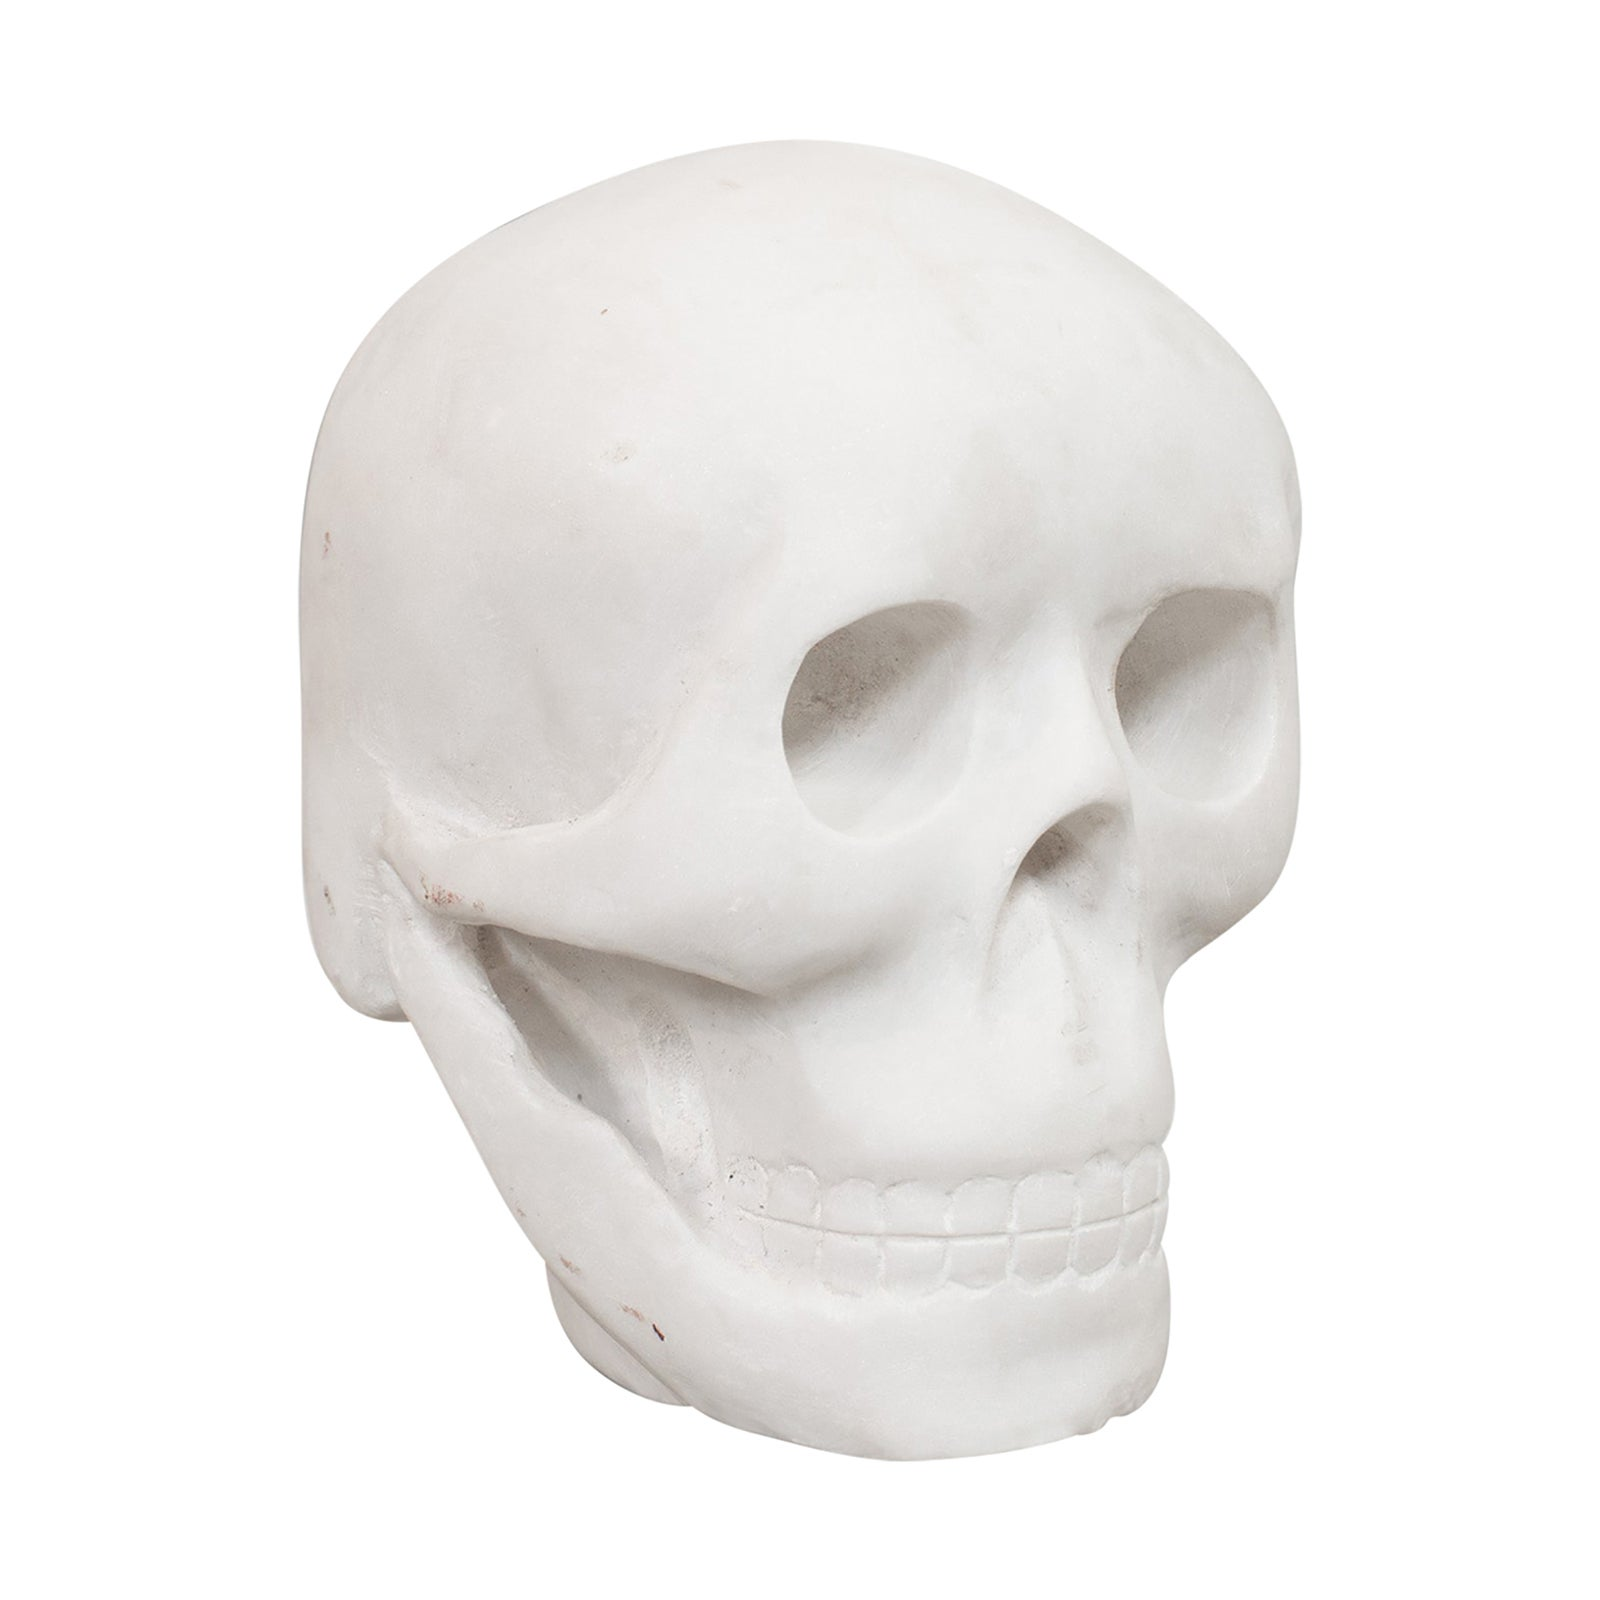 Vintage Marble Skull English Bianco Assoluto Paperweight, Ornament, 20th Century